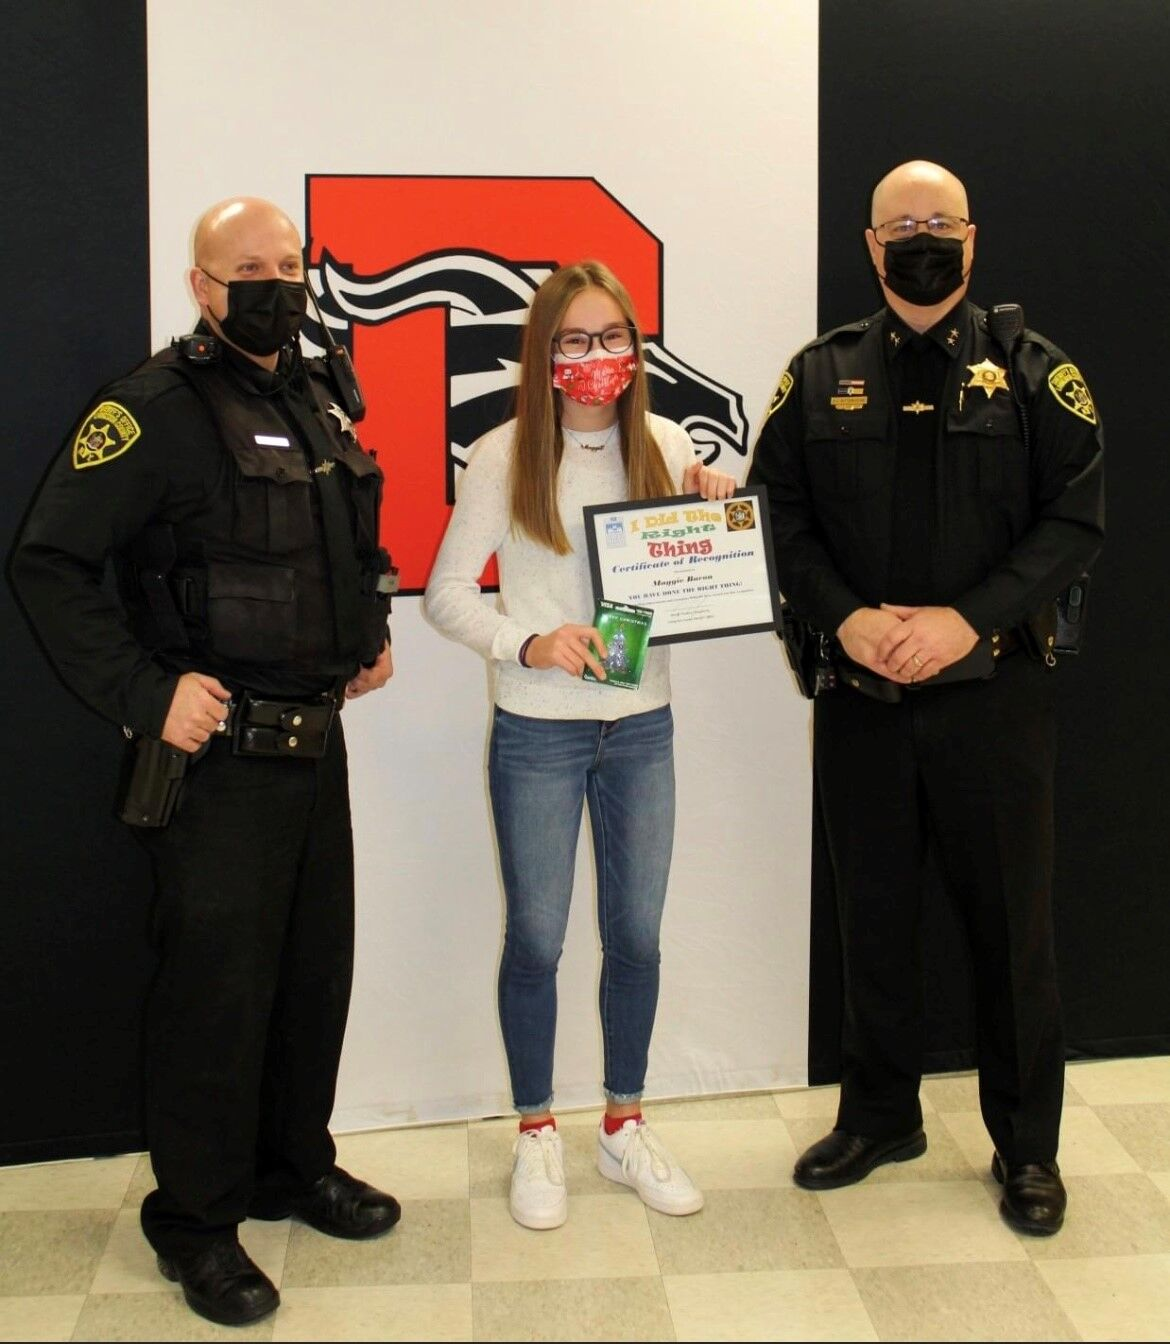 Maggie Bacon Receives the Do the Right Thing Award